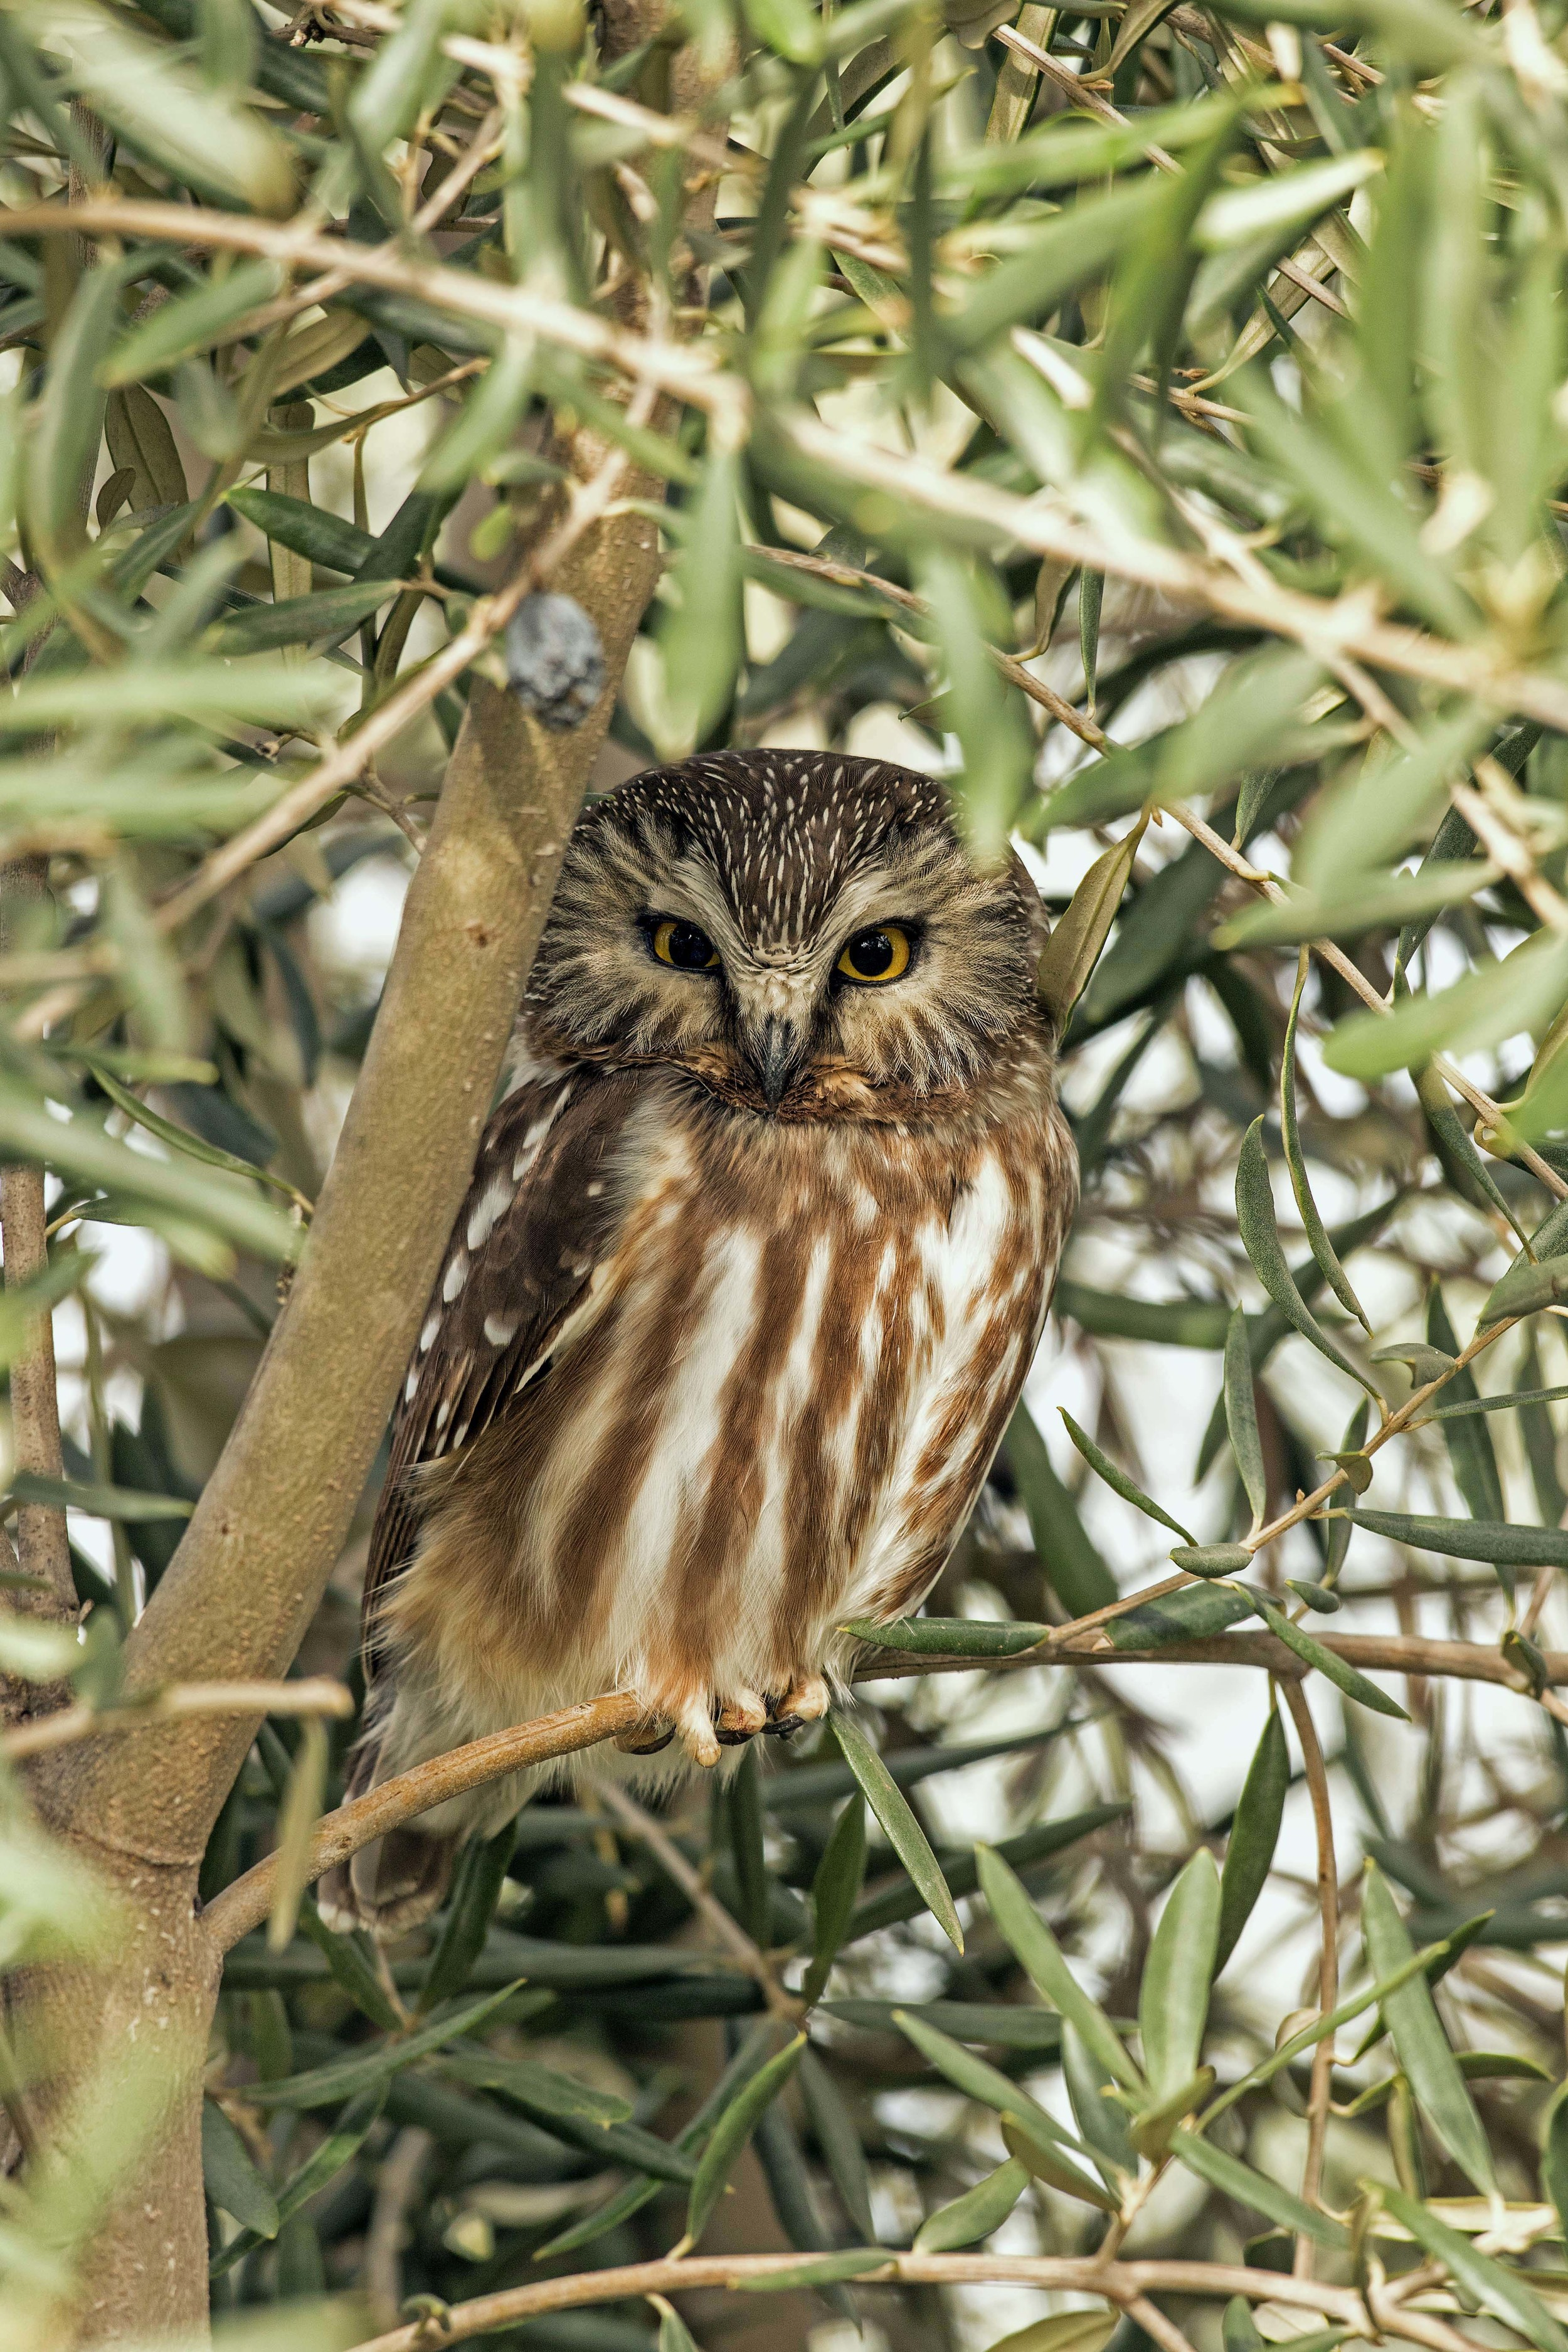 Owl photo from Manfred.jpeg